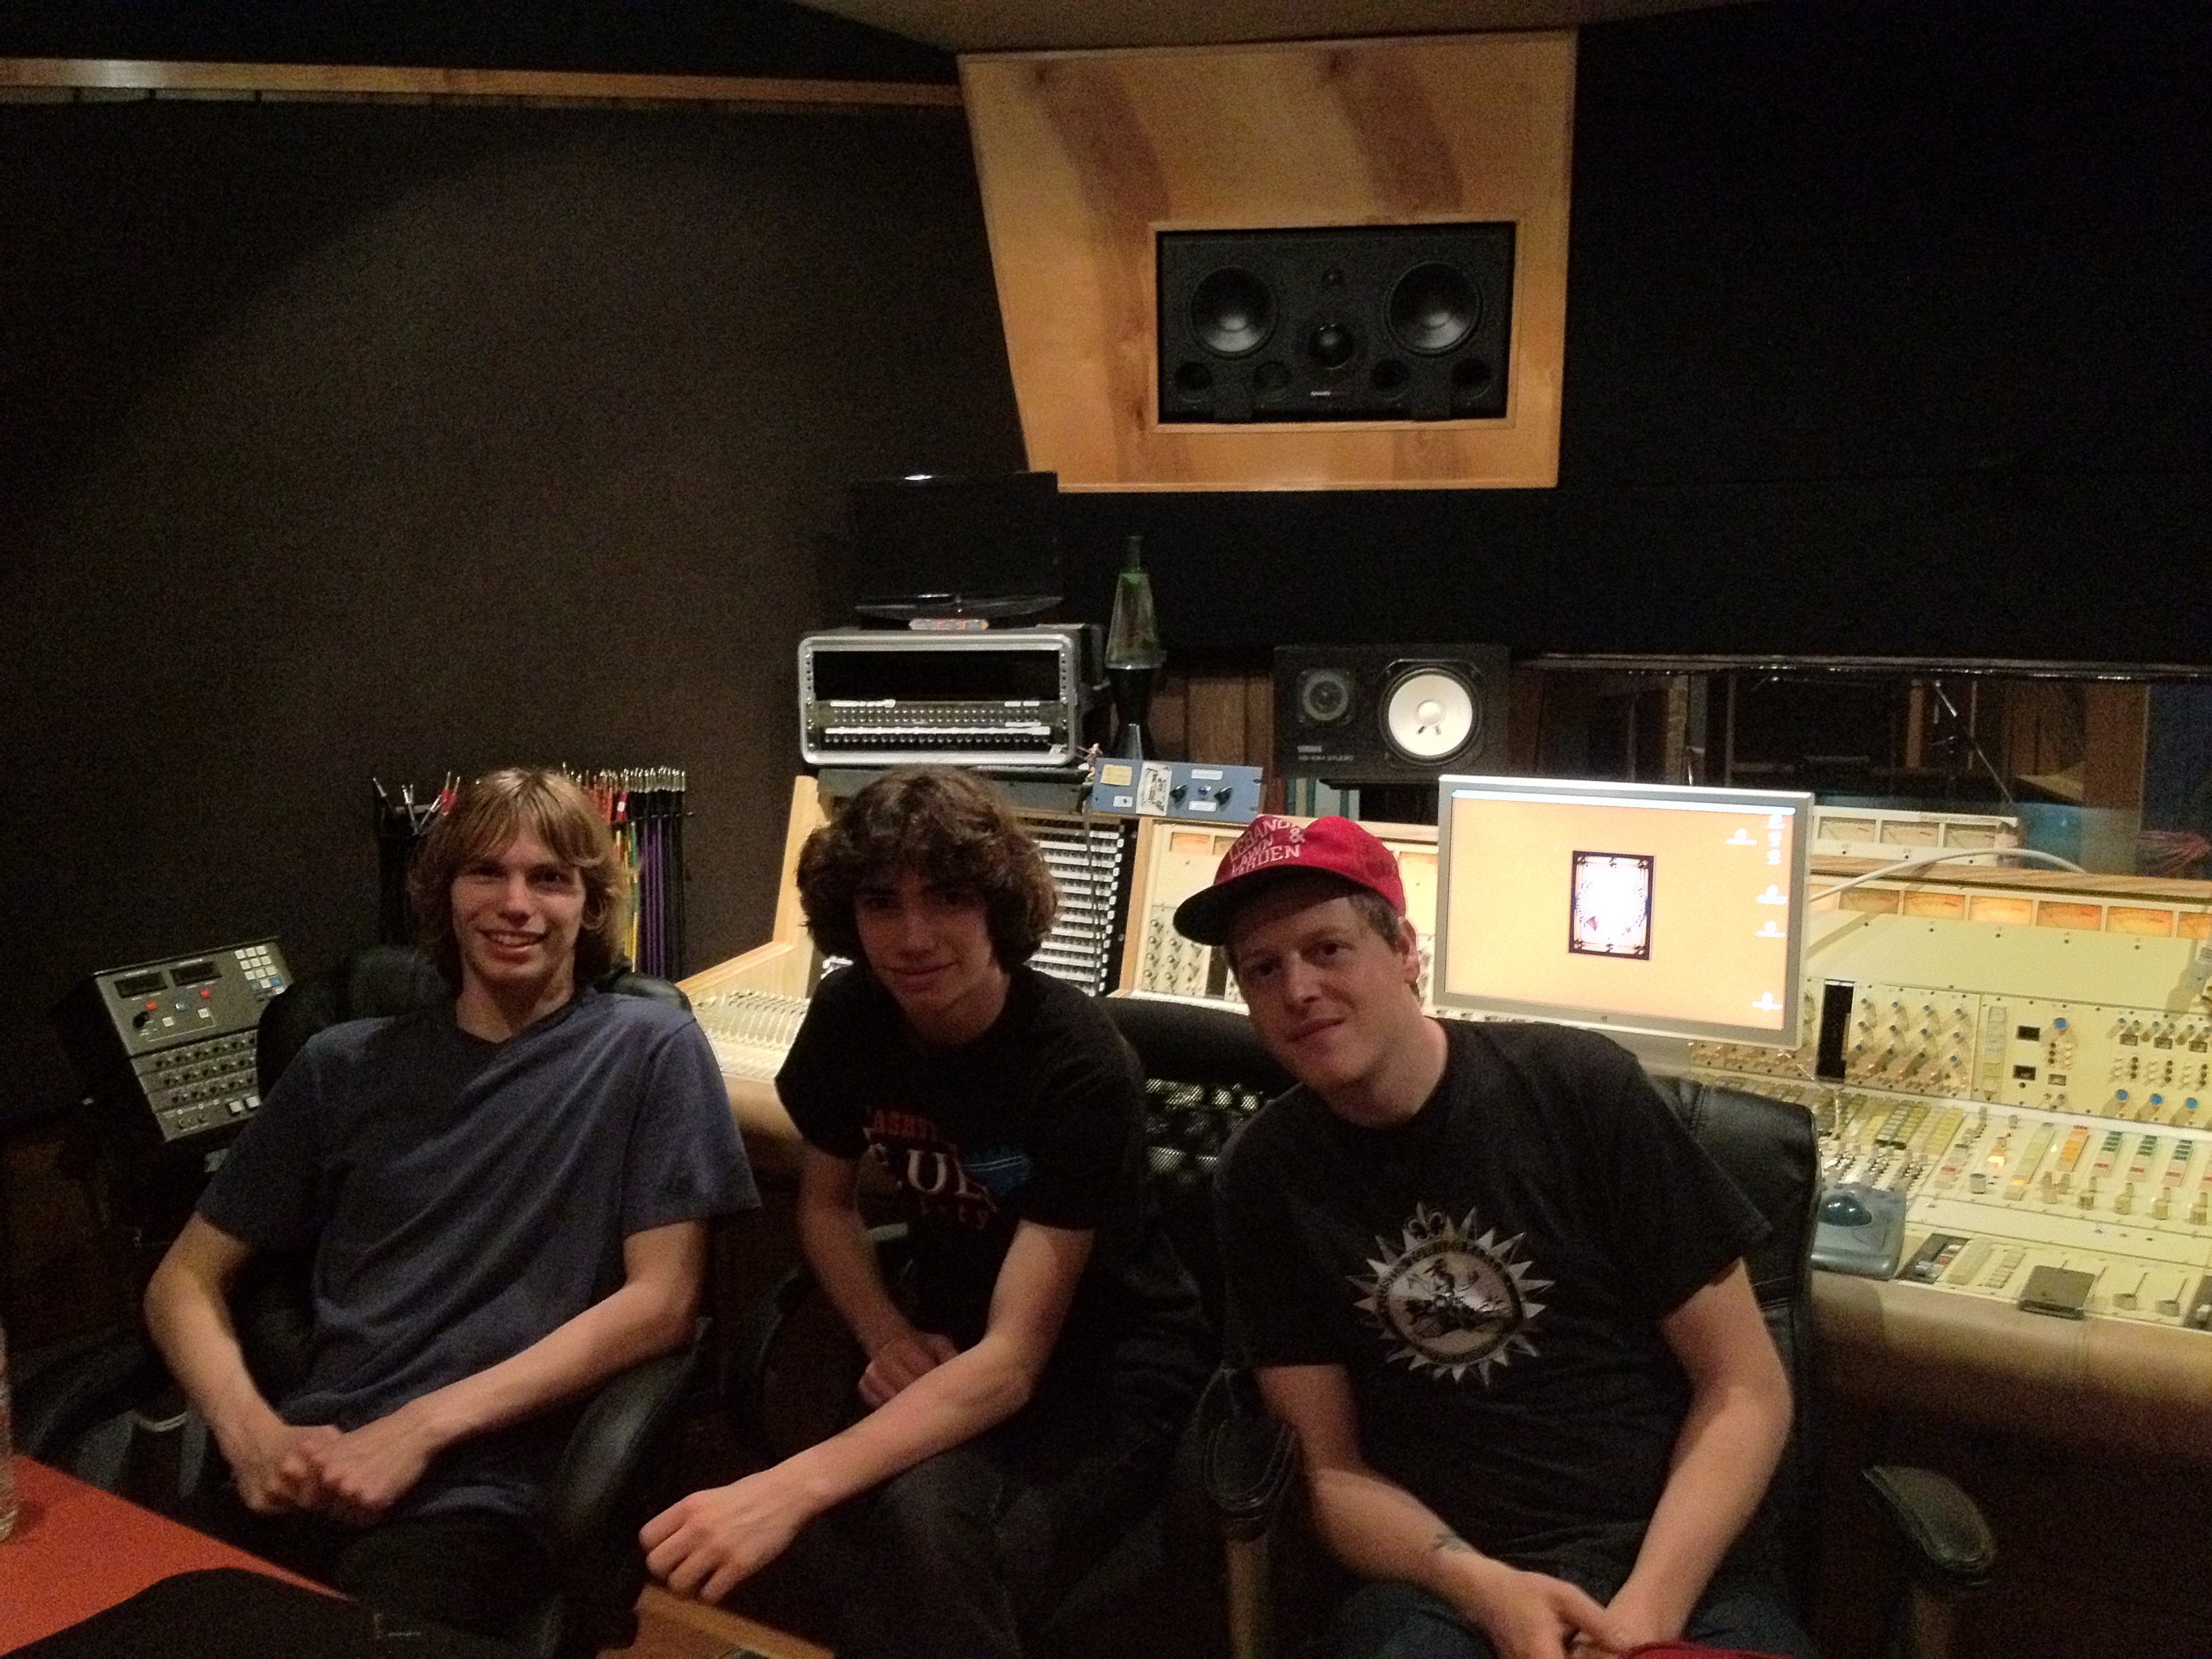 L-R: Brian, Jeff, and recording engineer Adam Bednarik in the control room.